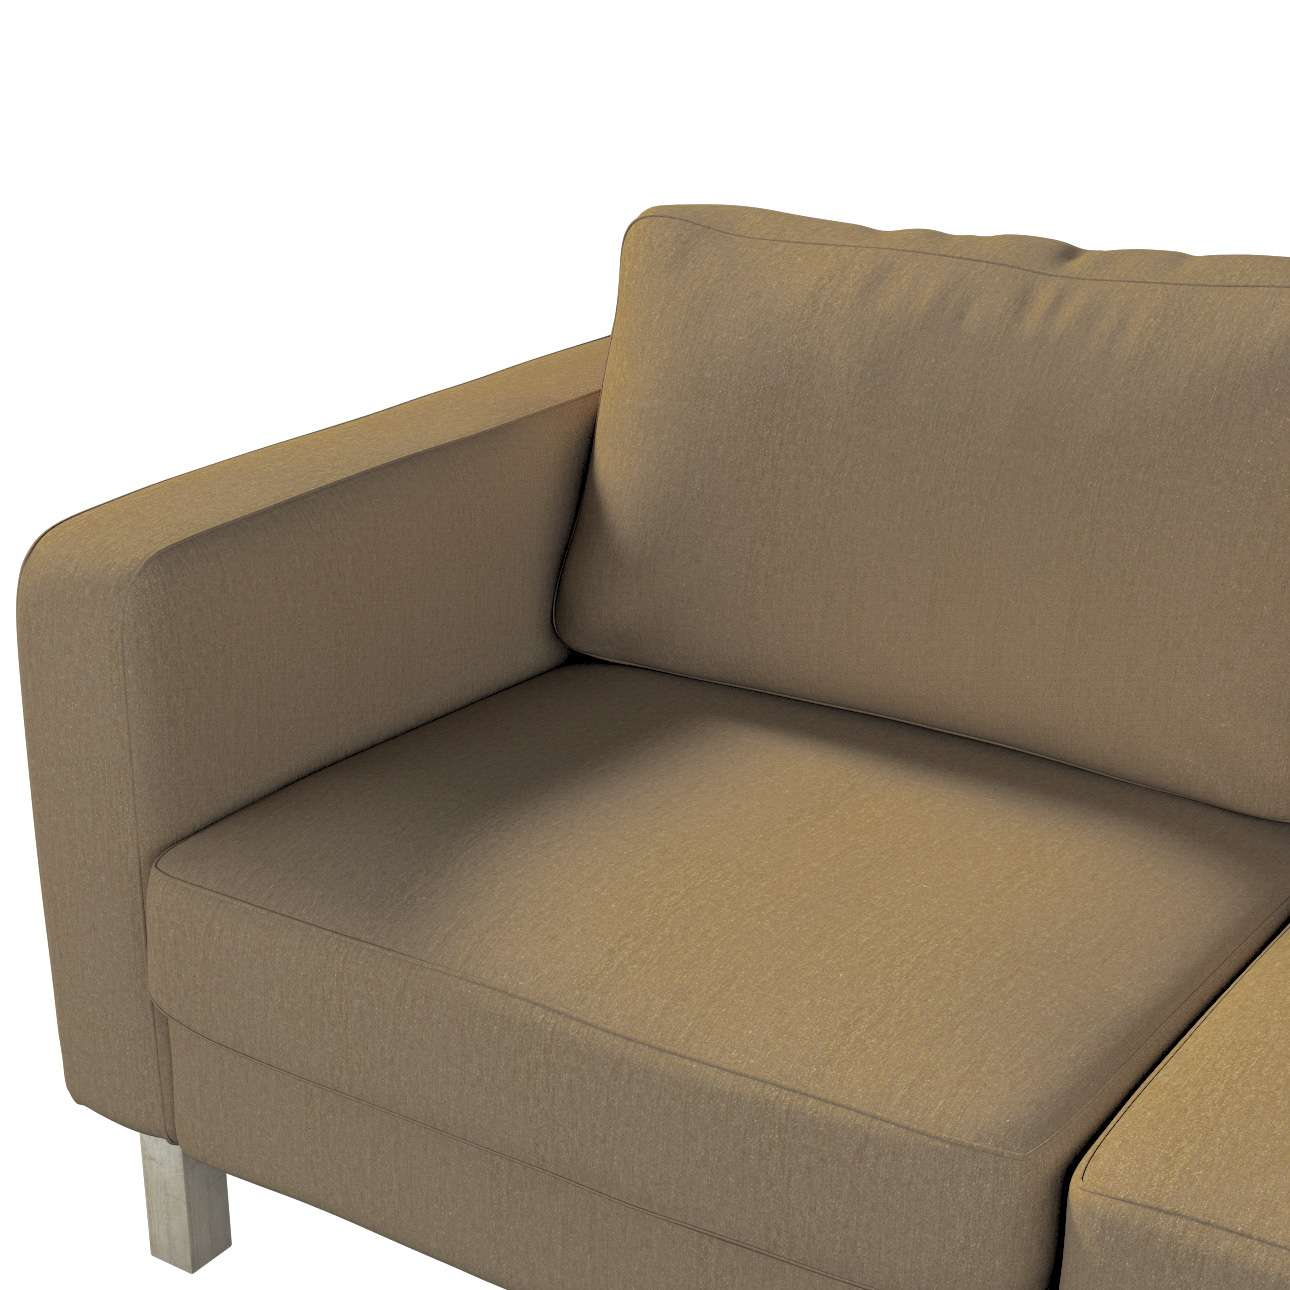 Karlstad 2-seater sofa cover in collection Chenille, fabric: 702-21